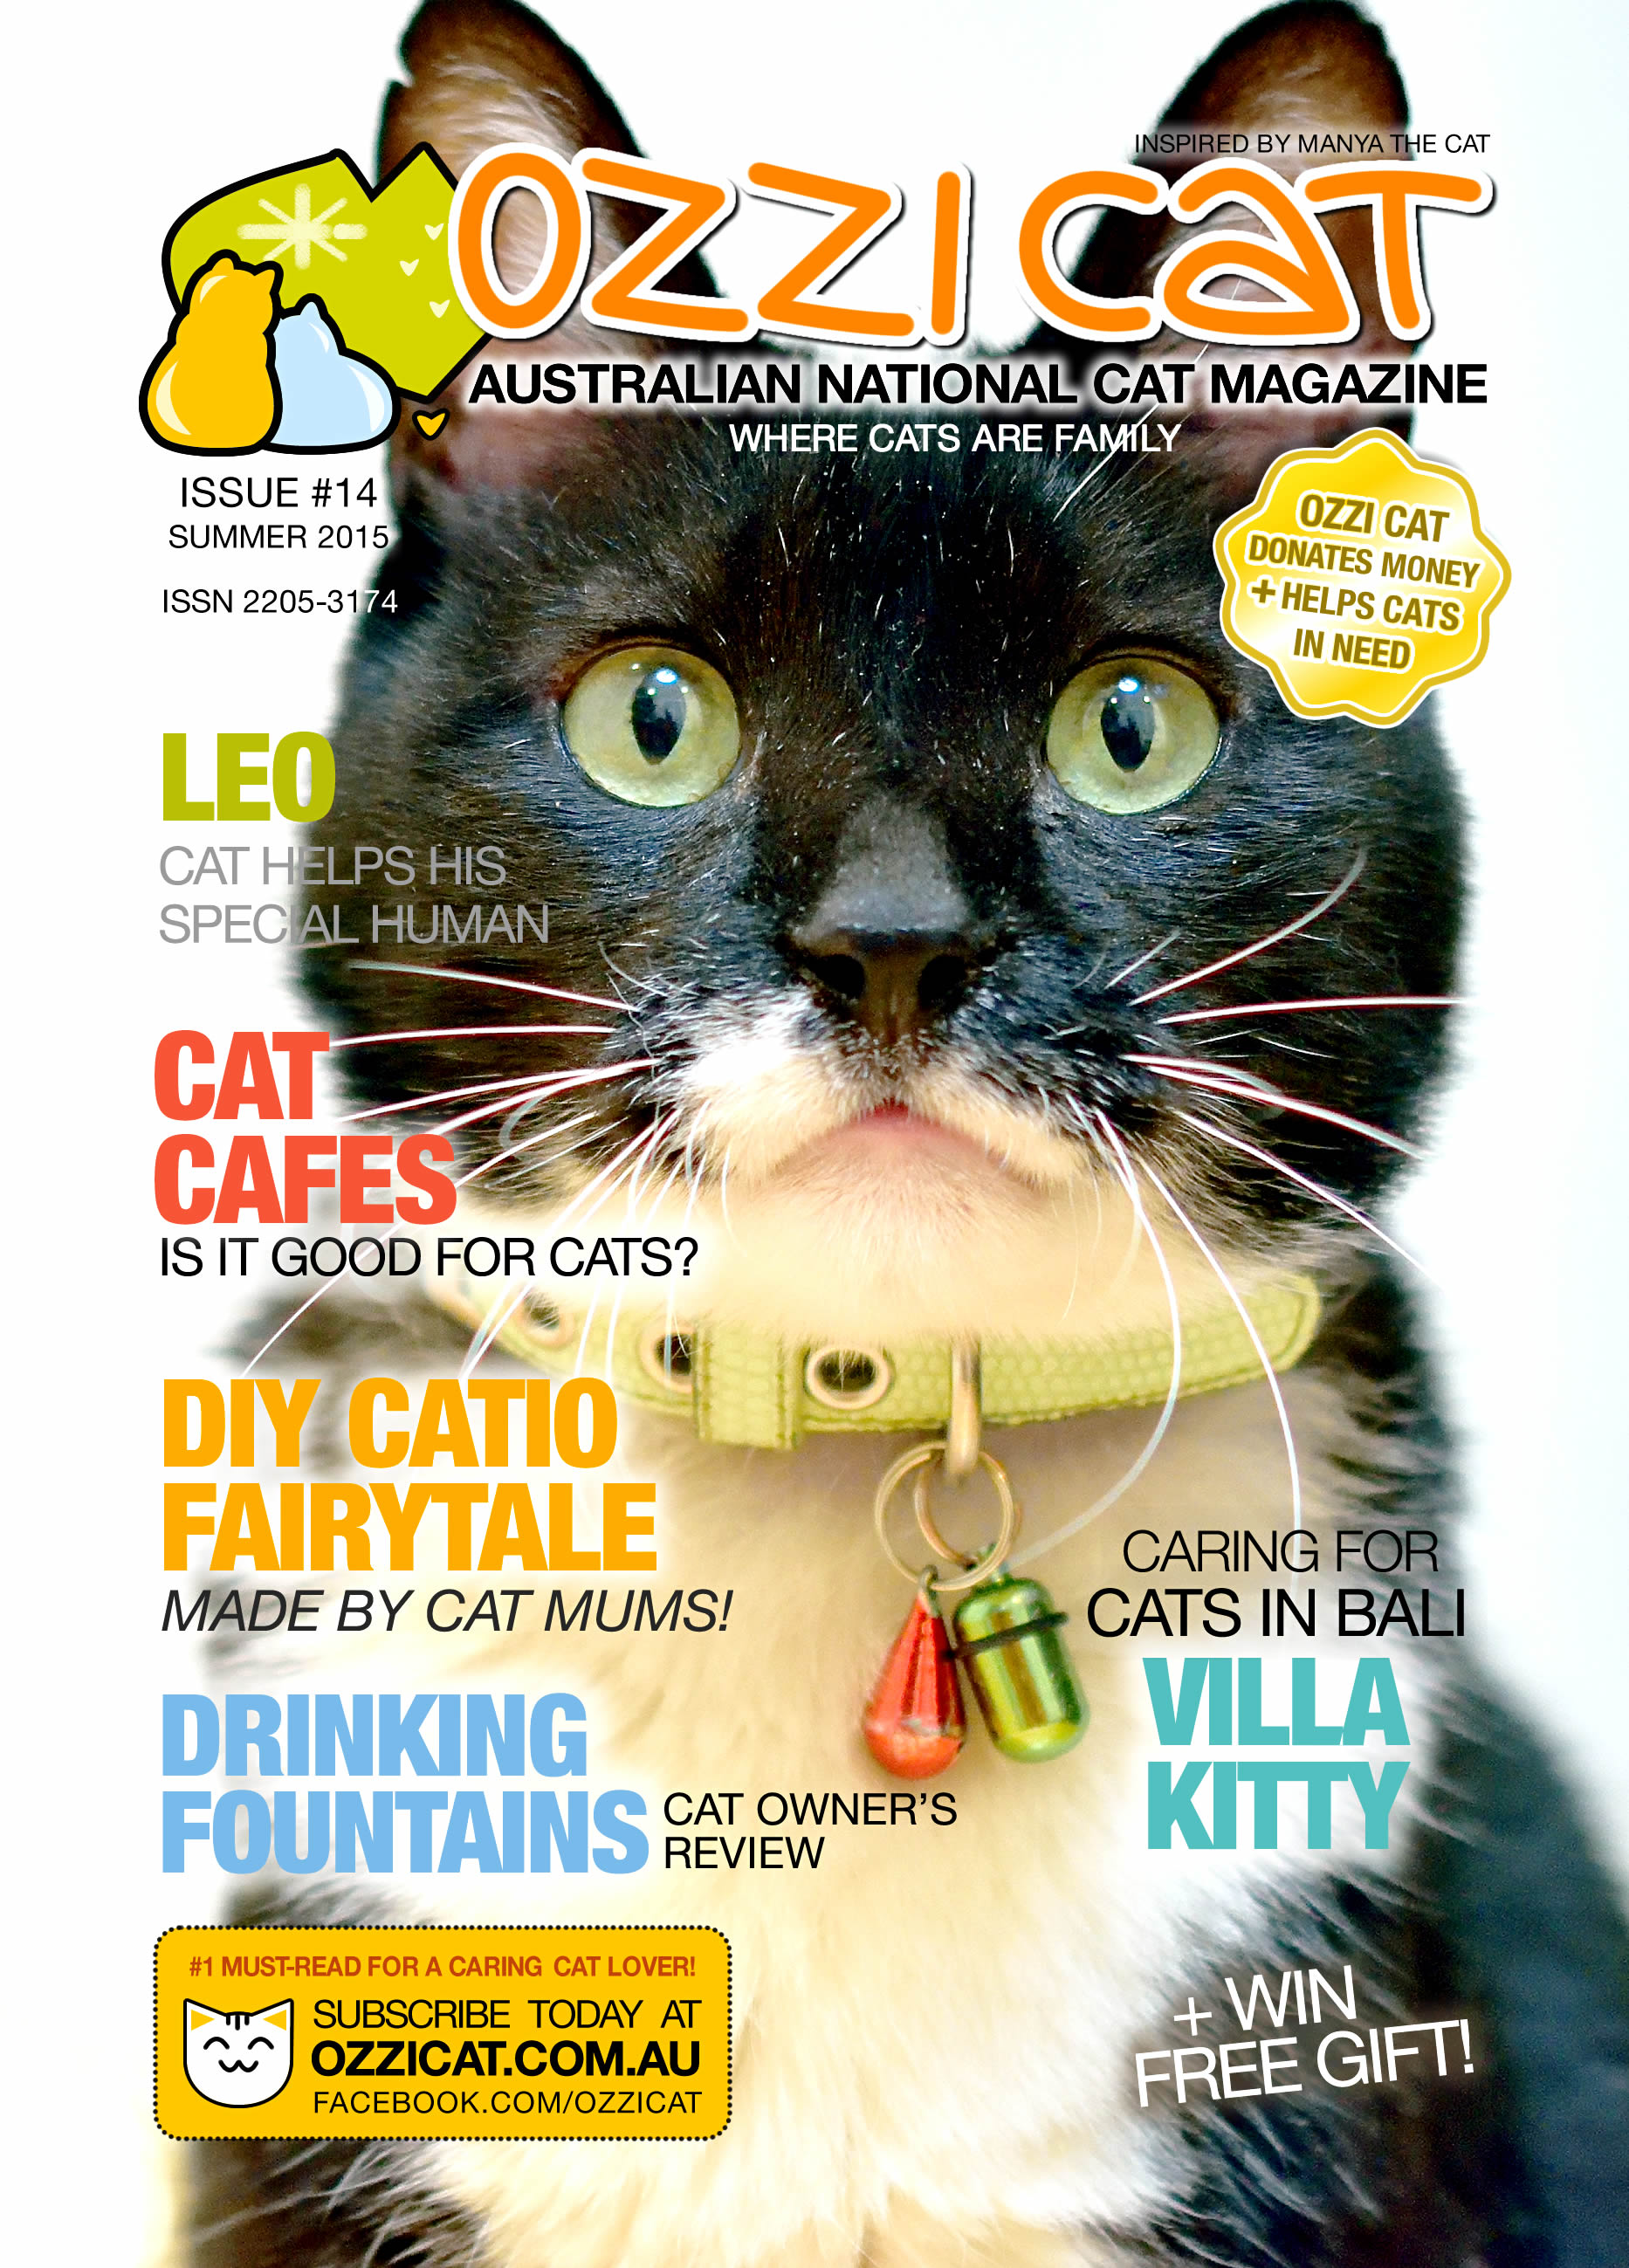 Ozzi Cat - Australian National Cat Magazine - Issue 14 - Summer 2015